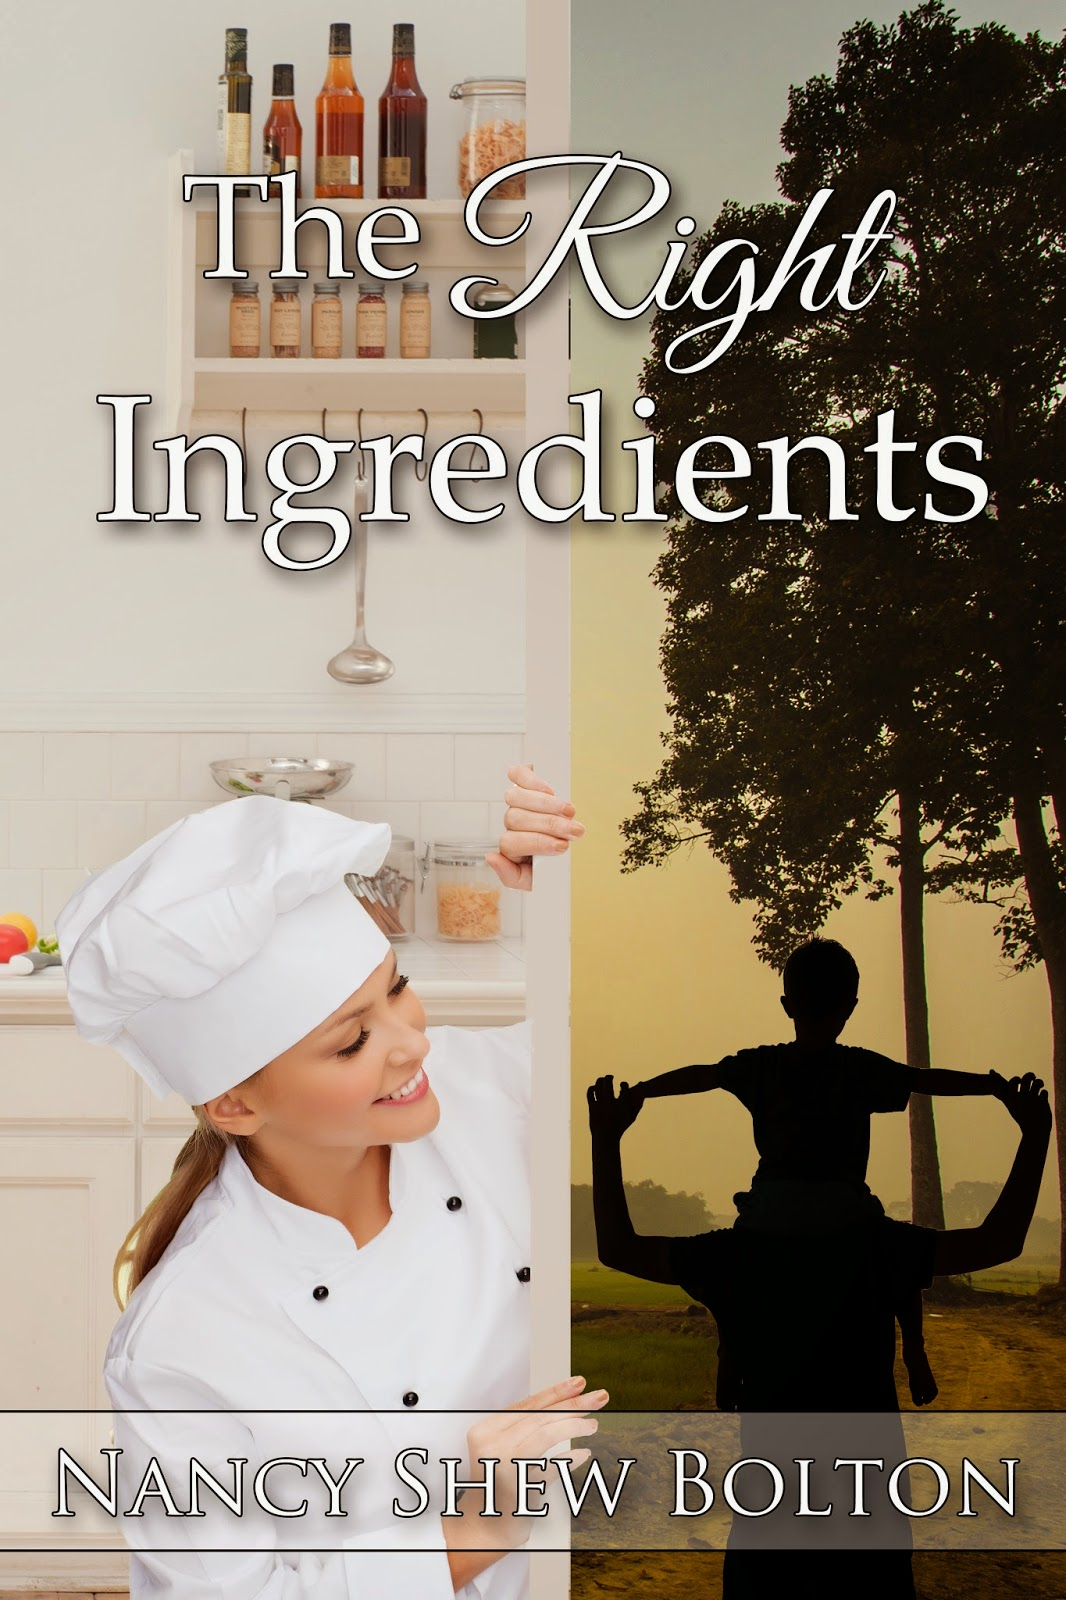 http://www.amazon.com/Right-Ingredients-Nancy-Shew-Bolton-ebook/dp/B00NR22X1C/ref=sr_1_1?ie=UTF8&qid=1412006823&sr=8-1&keywords=nancy+bolton